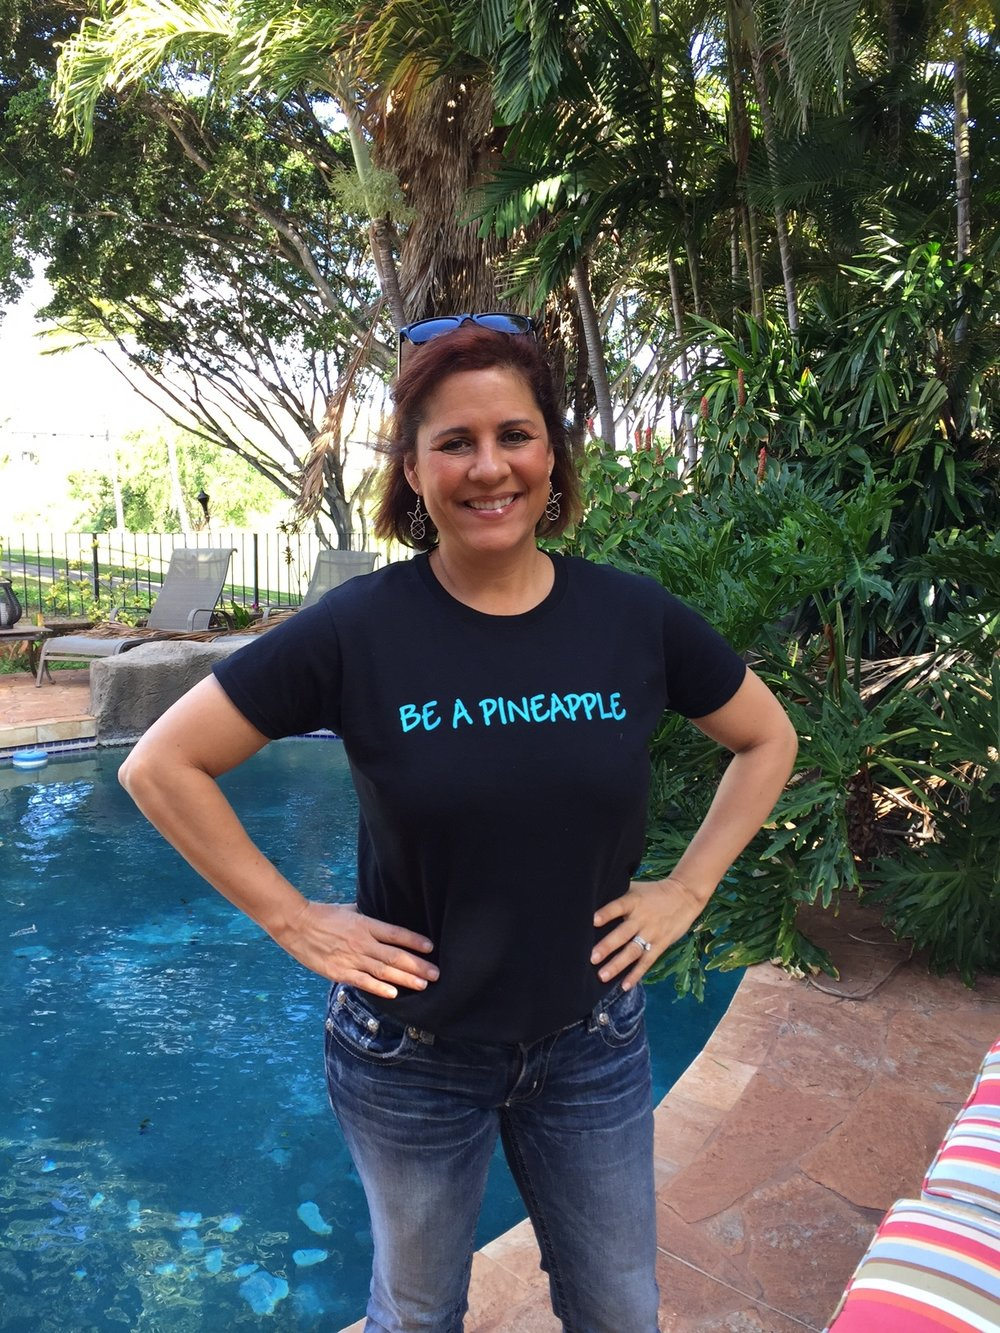 Be A Pineapple T-shirt (front) - www.stampedwithaloha.com